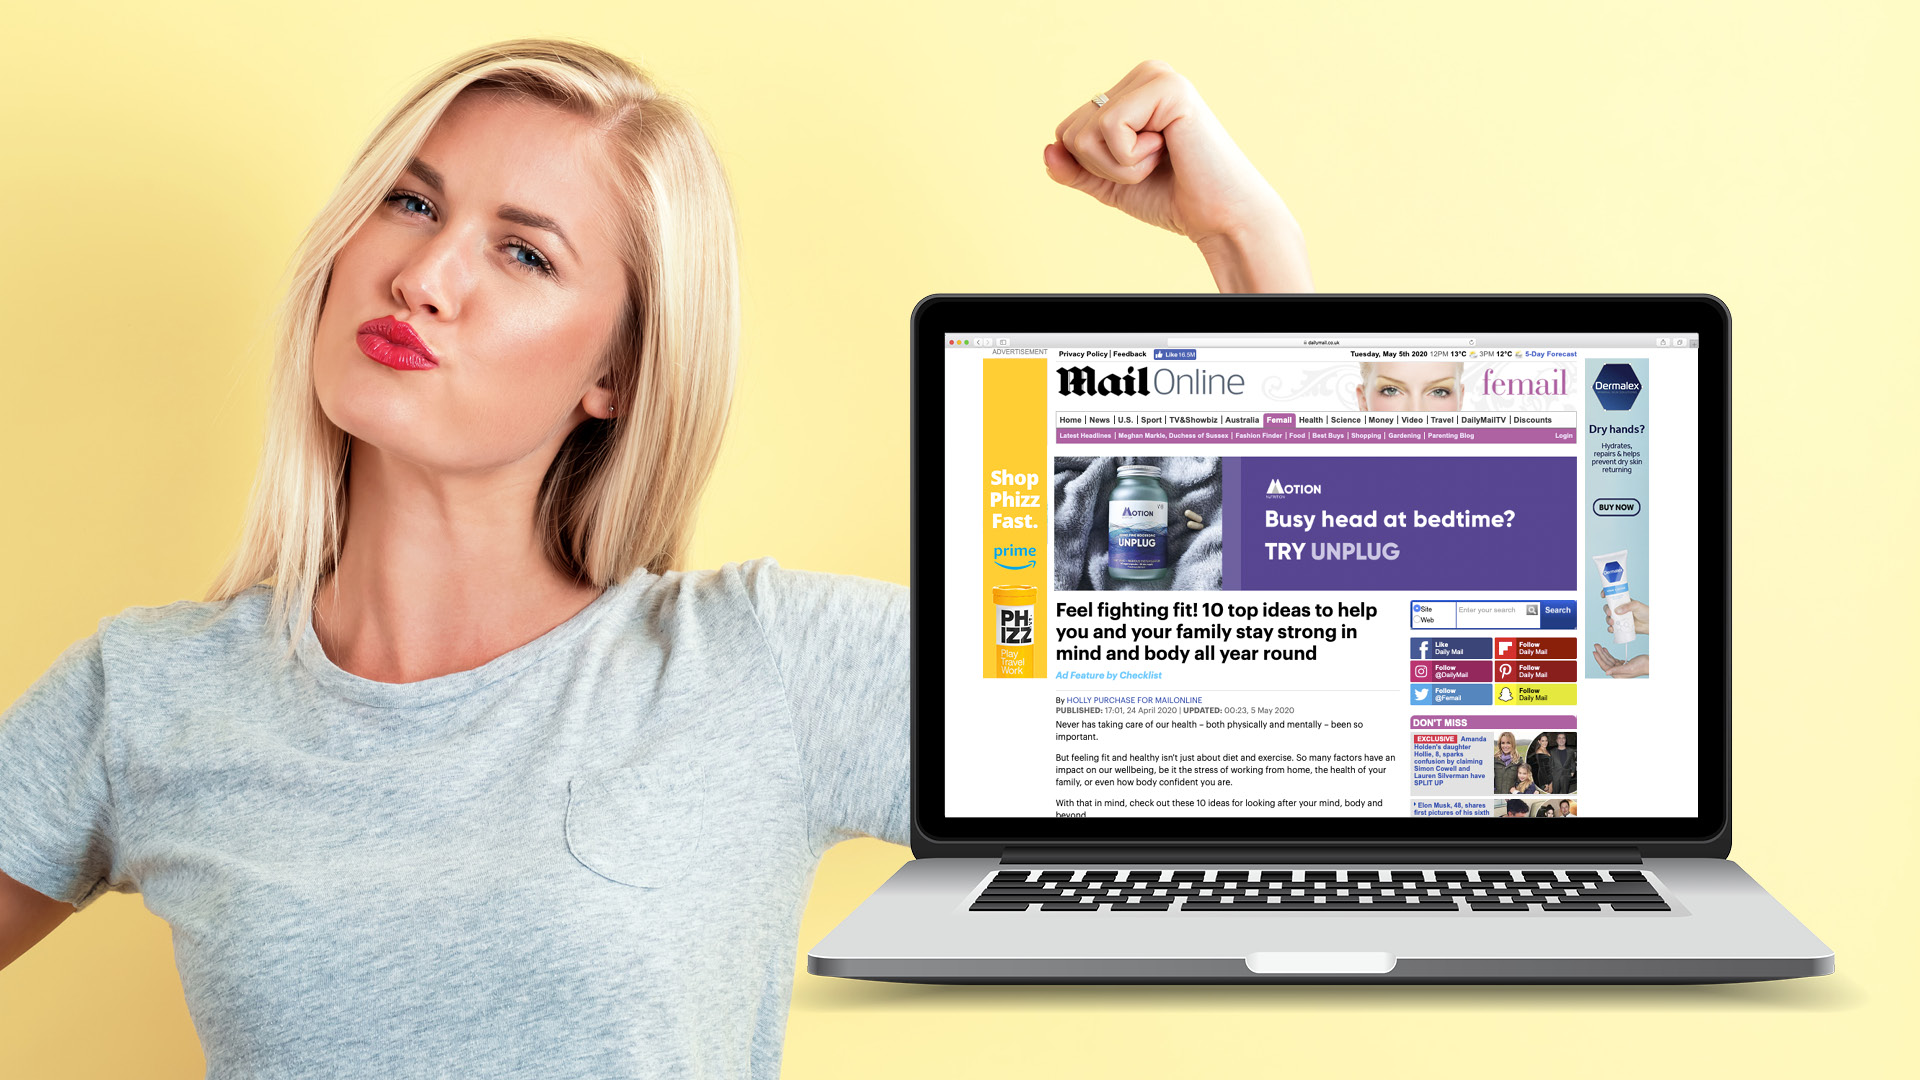 Latest MailOnline feature will inspire you to feel fighting fit